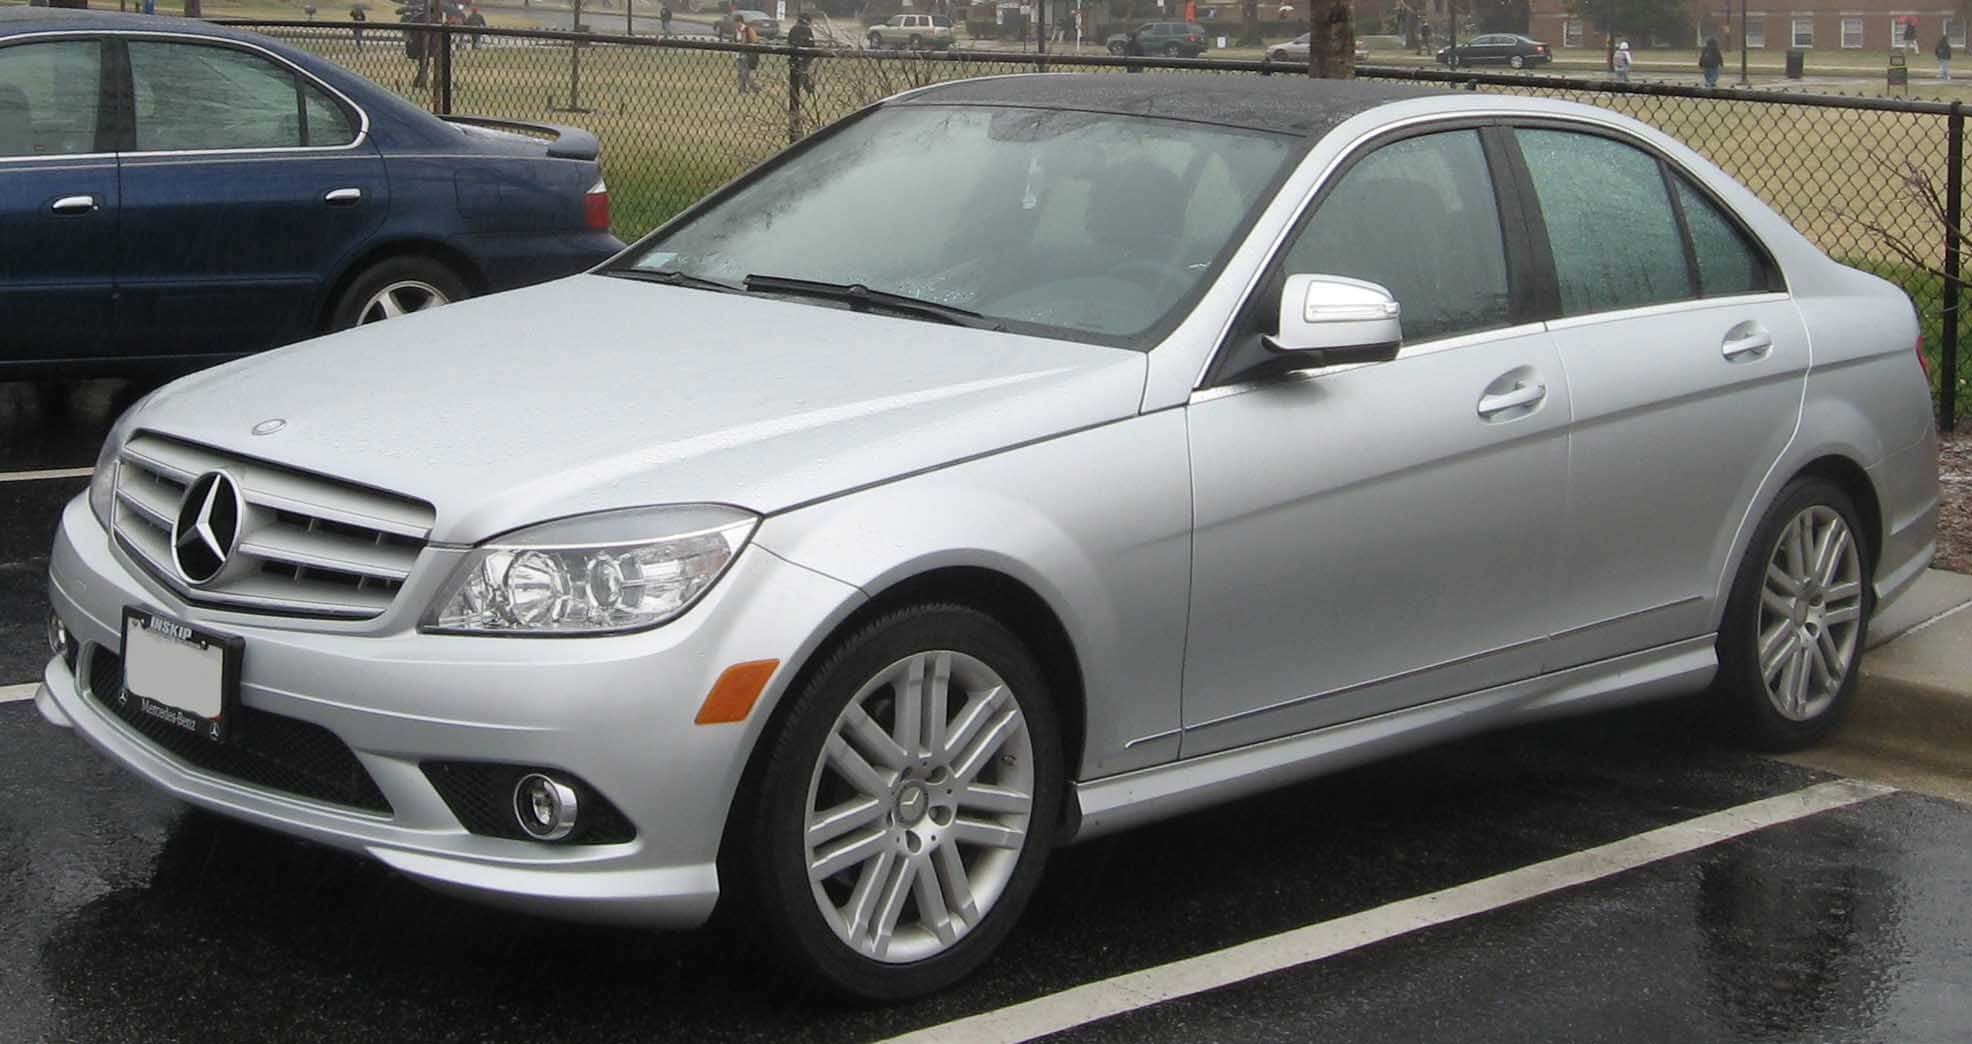 Mercedes Benz C300 Price in Nigeria